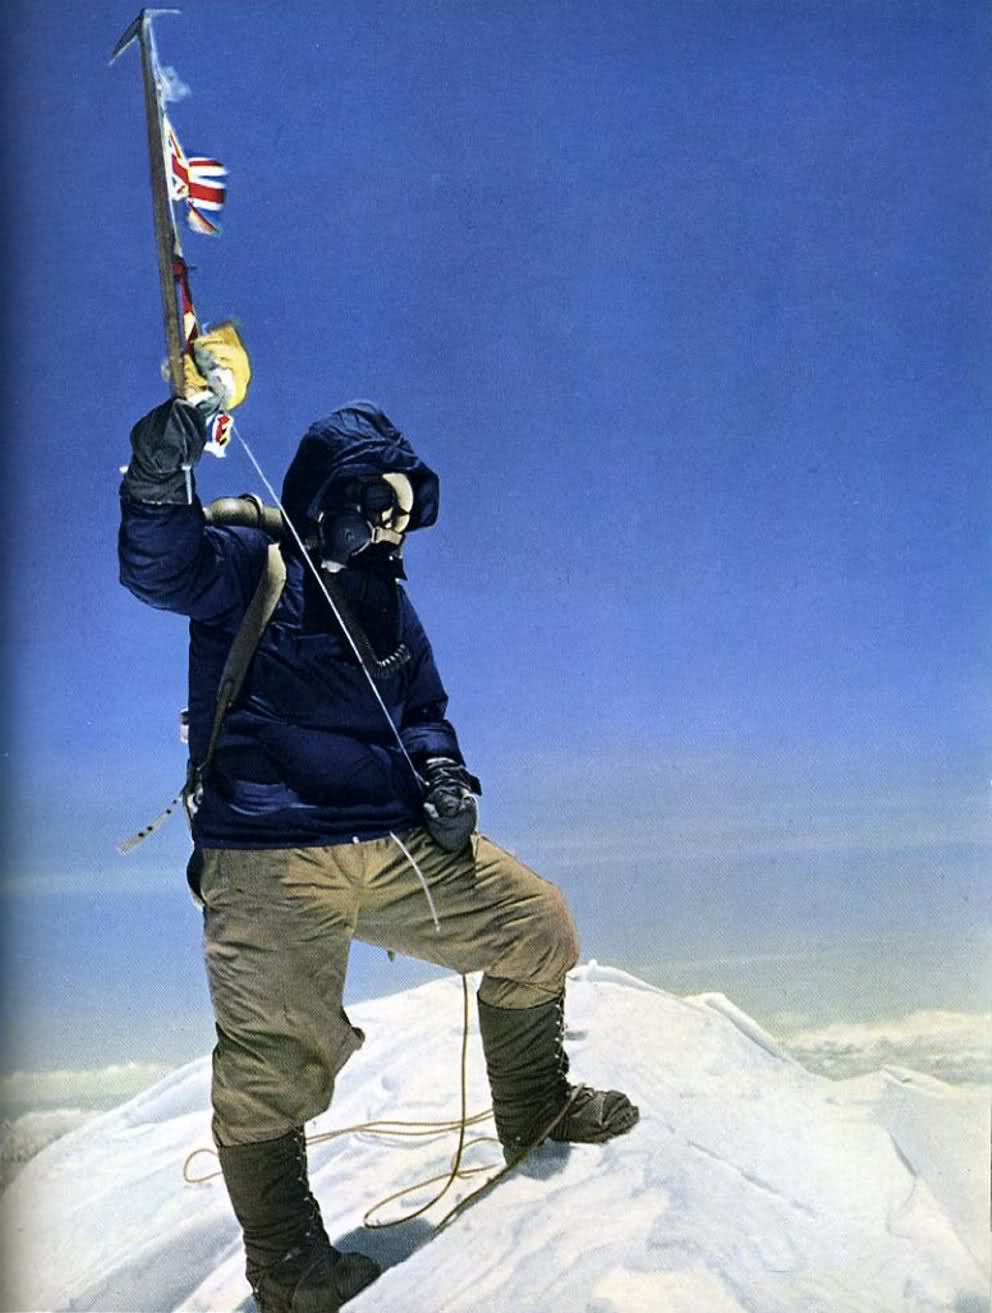 "highcrimescomic: Tenzing Norgay at the summit of Mount Everest. May 29th, 1953. 11:30am. ""We didn't waste any time. I started cutting steps again, seeking now rather anxiously for signs of the summit. We seemed to go on forever, tired now and moving rather slowly. In the distance I could see the barren plateau of Tibet. I looked up to the right and there was a rounded snowy dome. It must be the summit! We drew closer together as Tenzing brought in the slack on the rope. I continued cutting a line of steps upward. Next moment I had moved onto a flattish exposed area of snow with nothing but space in every direction. Tenzing quickly joined me and we looked around in wonder. To our immense satisfaction, we realized we had reached the top of the world! ""It was 11:30 a.m. on 29th May 1953. In typical Anglo-Saxon fashion, I stretched out my arm for a handshake, but this was not enough for Tenzing who threw his arms around my shoulders in a mighty hug and I hugged him back in return. With a feeling of mild surprise, I realized that Tenzing was perhaps more excited at our success than I was."" -VIEW FROM THE SUMMIT, Sir Edmund Hillary 60 years ago right about now, a beekeeper from New Zealand and a Nepalese sherpa were just about done with their 15 minutes of high-fiving and feeling like the literal kings of fuck mountain. And 60 years later, I get to write a comic because of it. Everything makes a weird sort of sense, because it makes no sense at all."